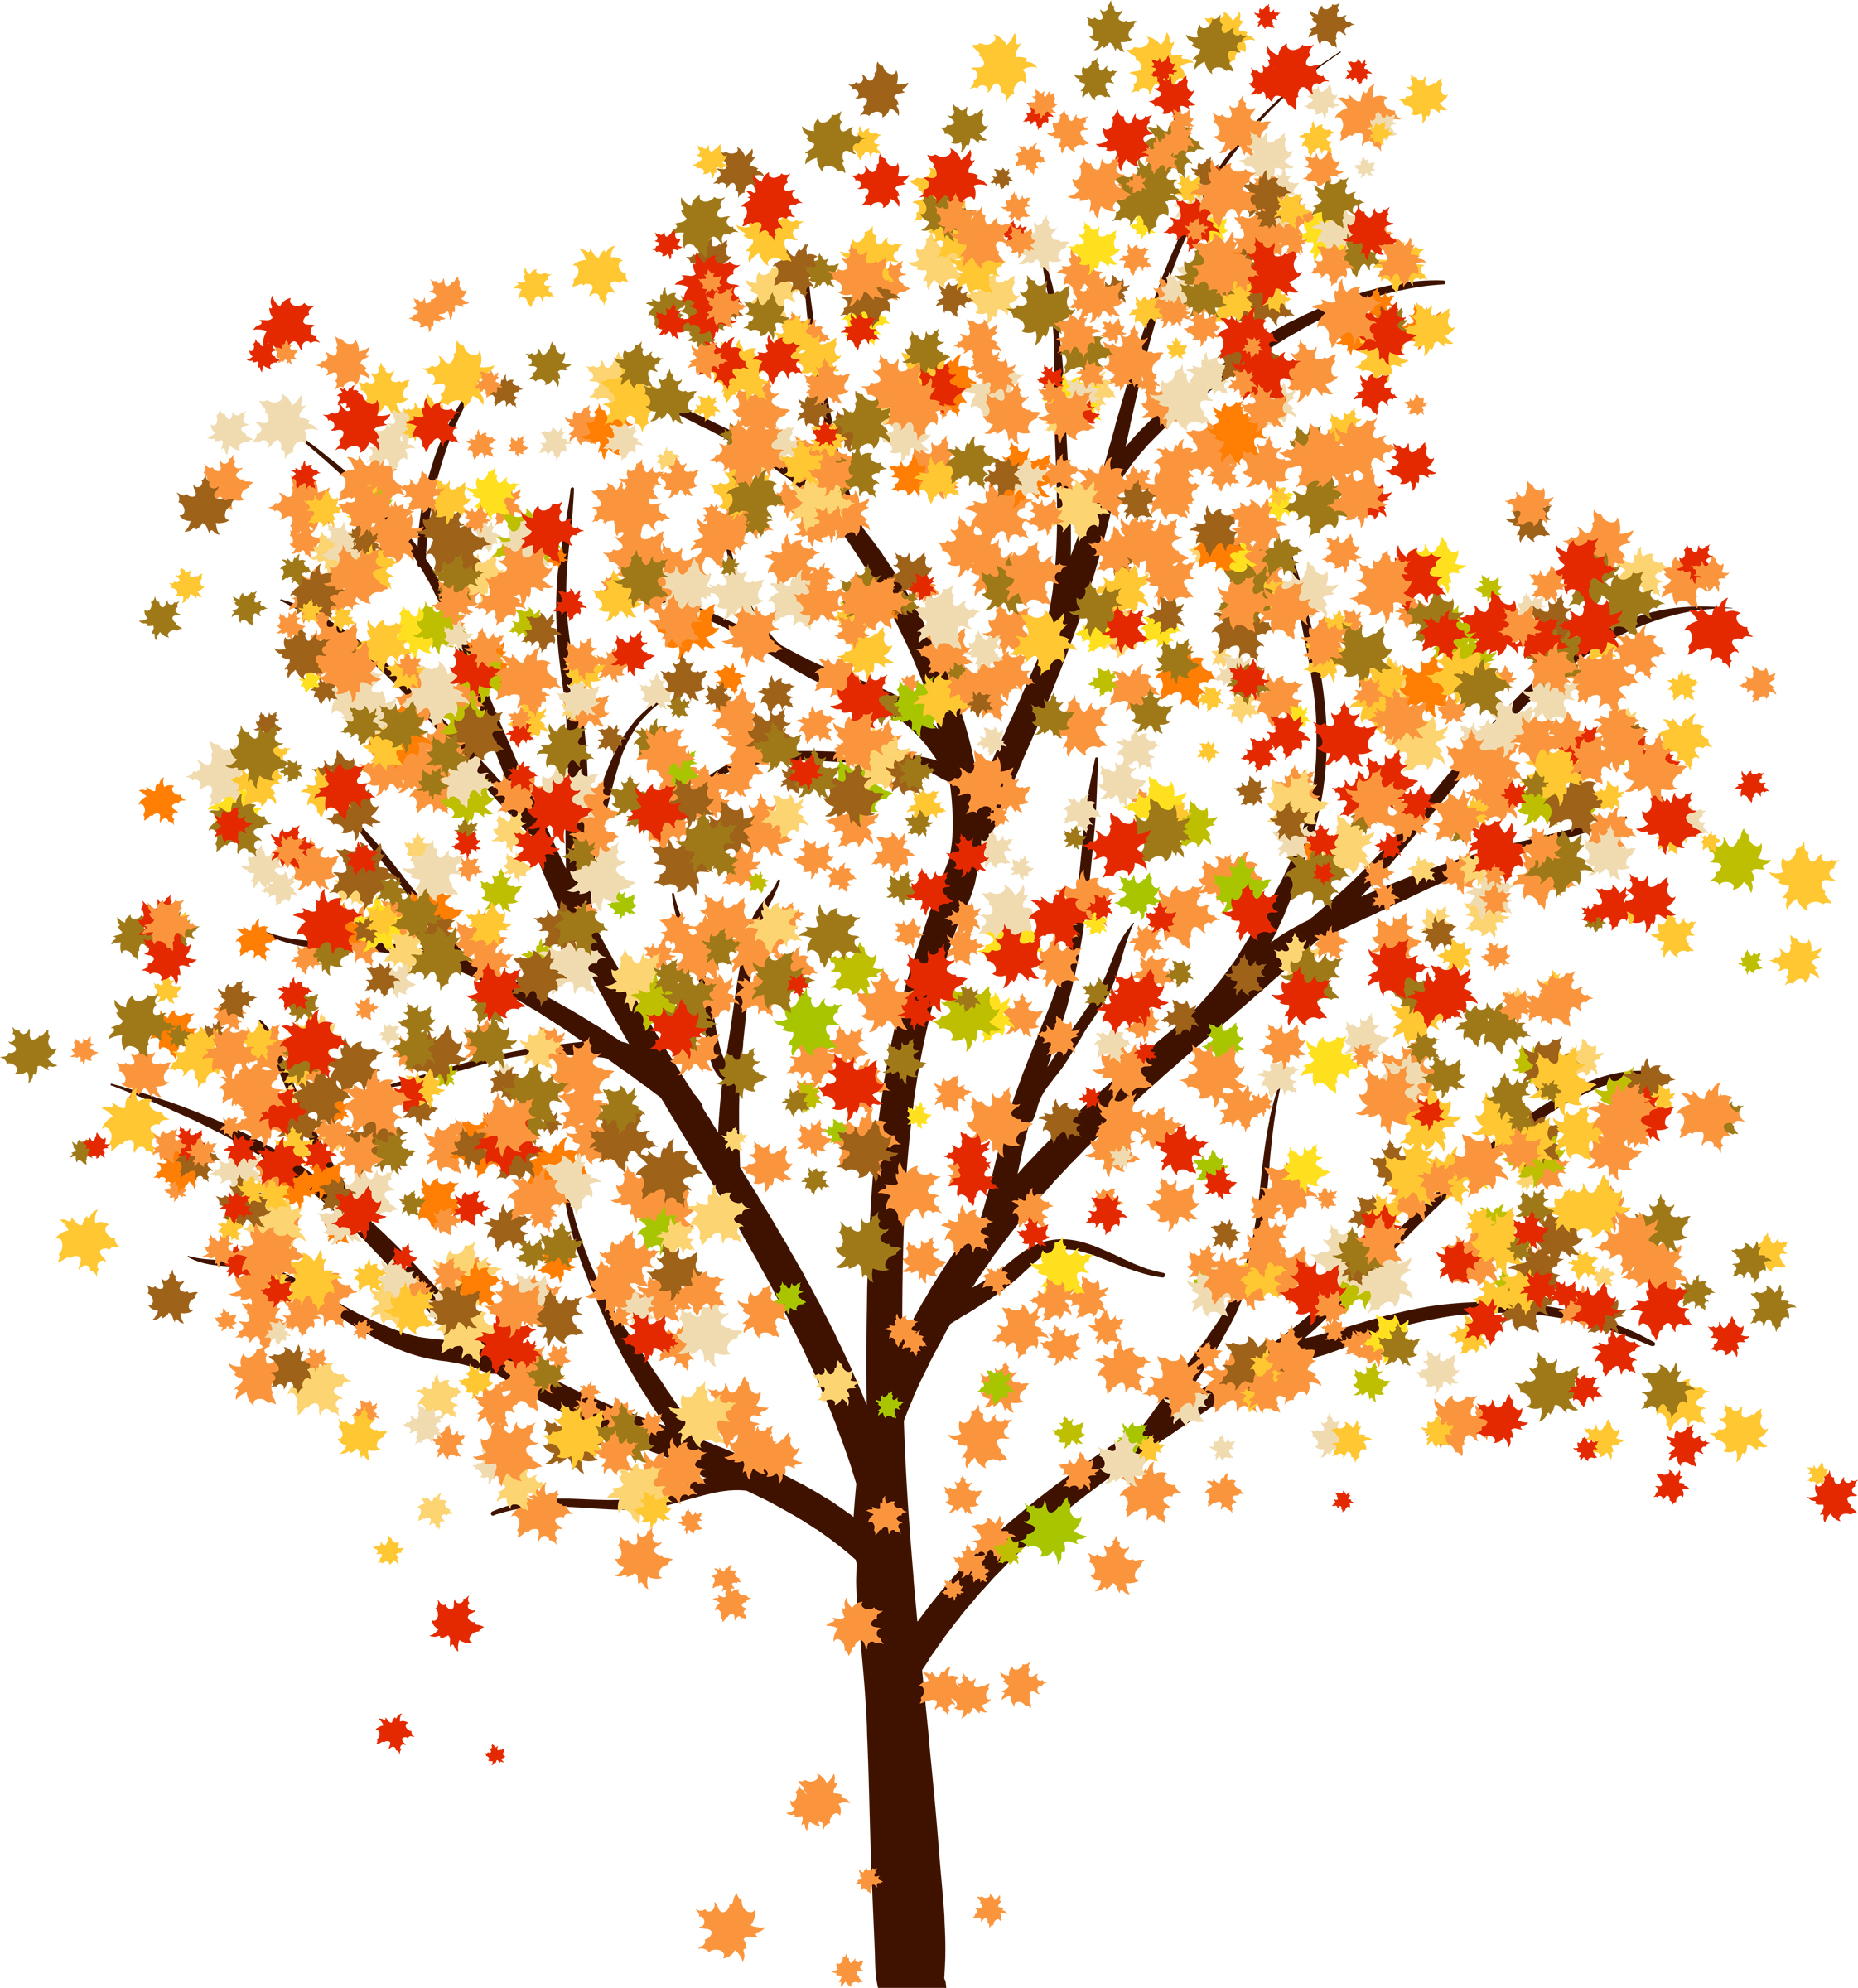 clip art of tree with falling leaves - photo #29